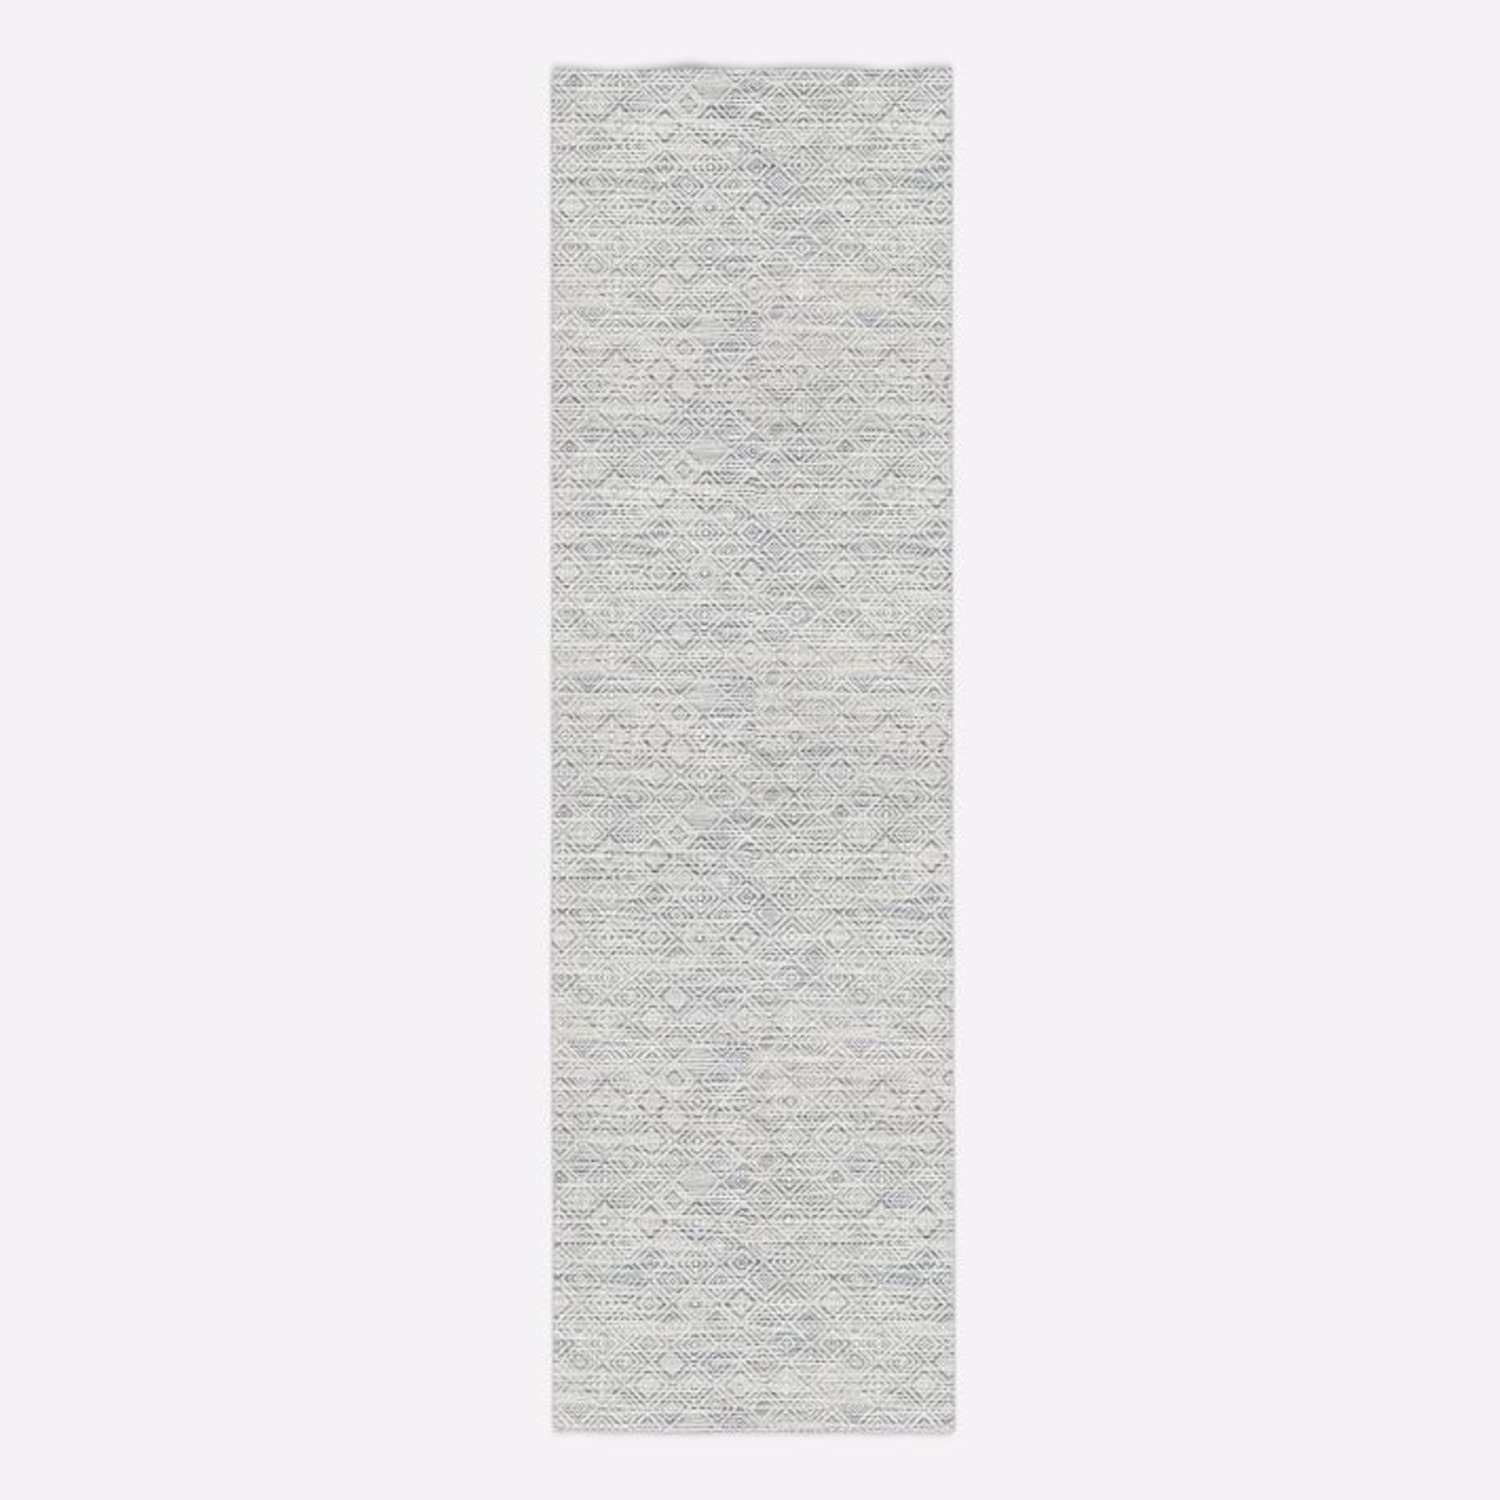 West Elm Chilewich Mosaic Woven Floormat - image-1